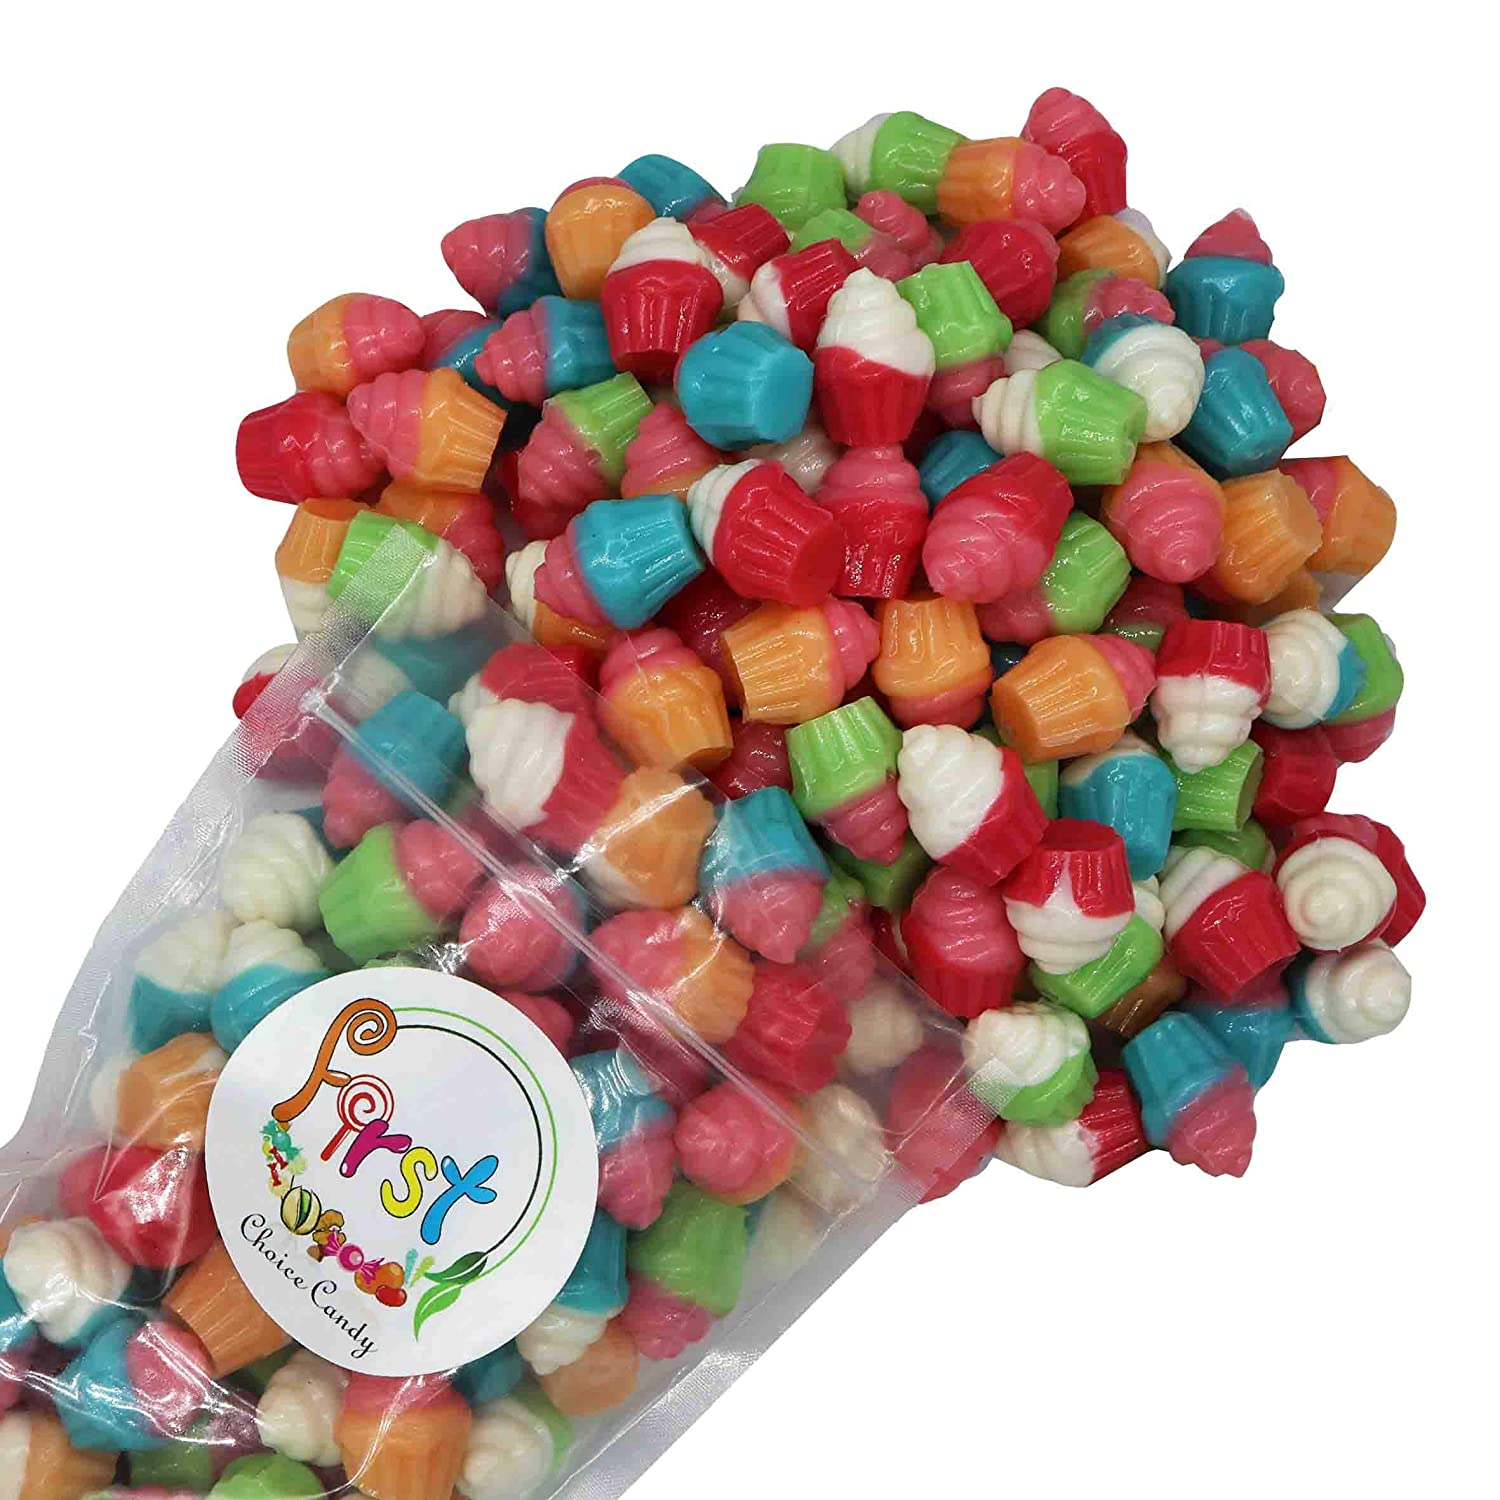 FirstChoiceCandy 3D Assorted Gummy Outlet Special Campaign ☆ Free Shipping Rainbow Juicy Candy Cupcakes